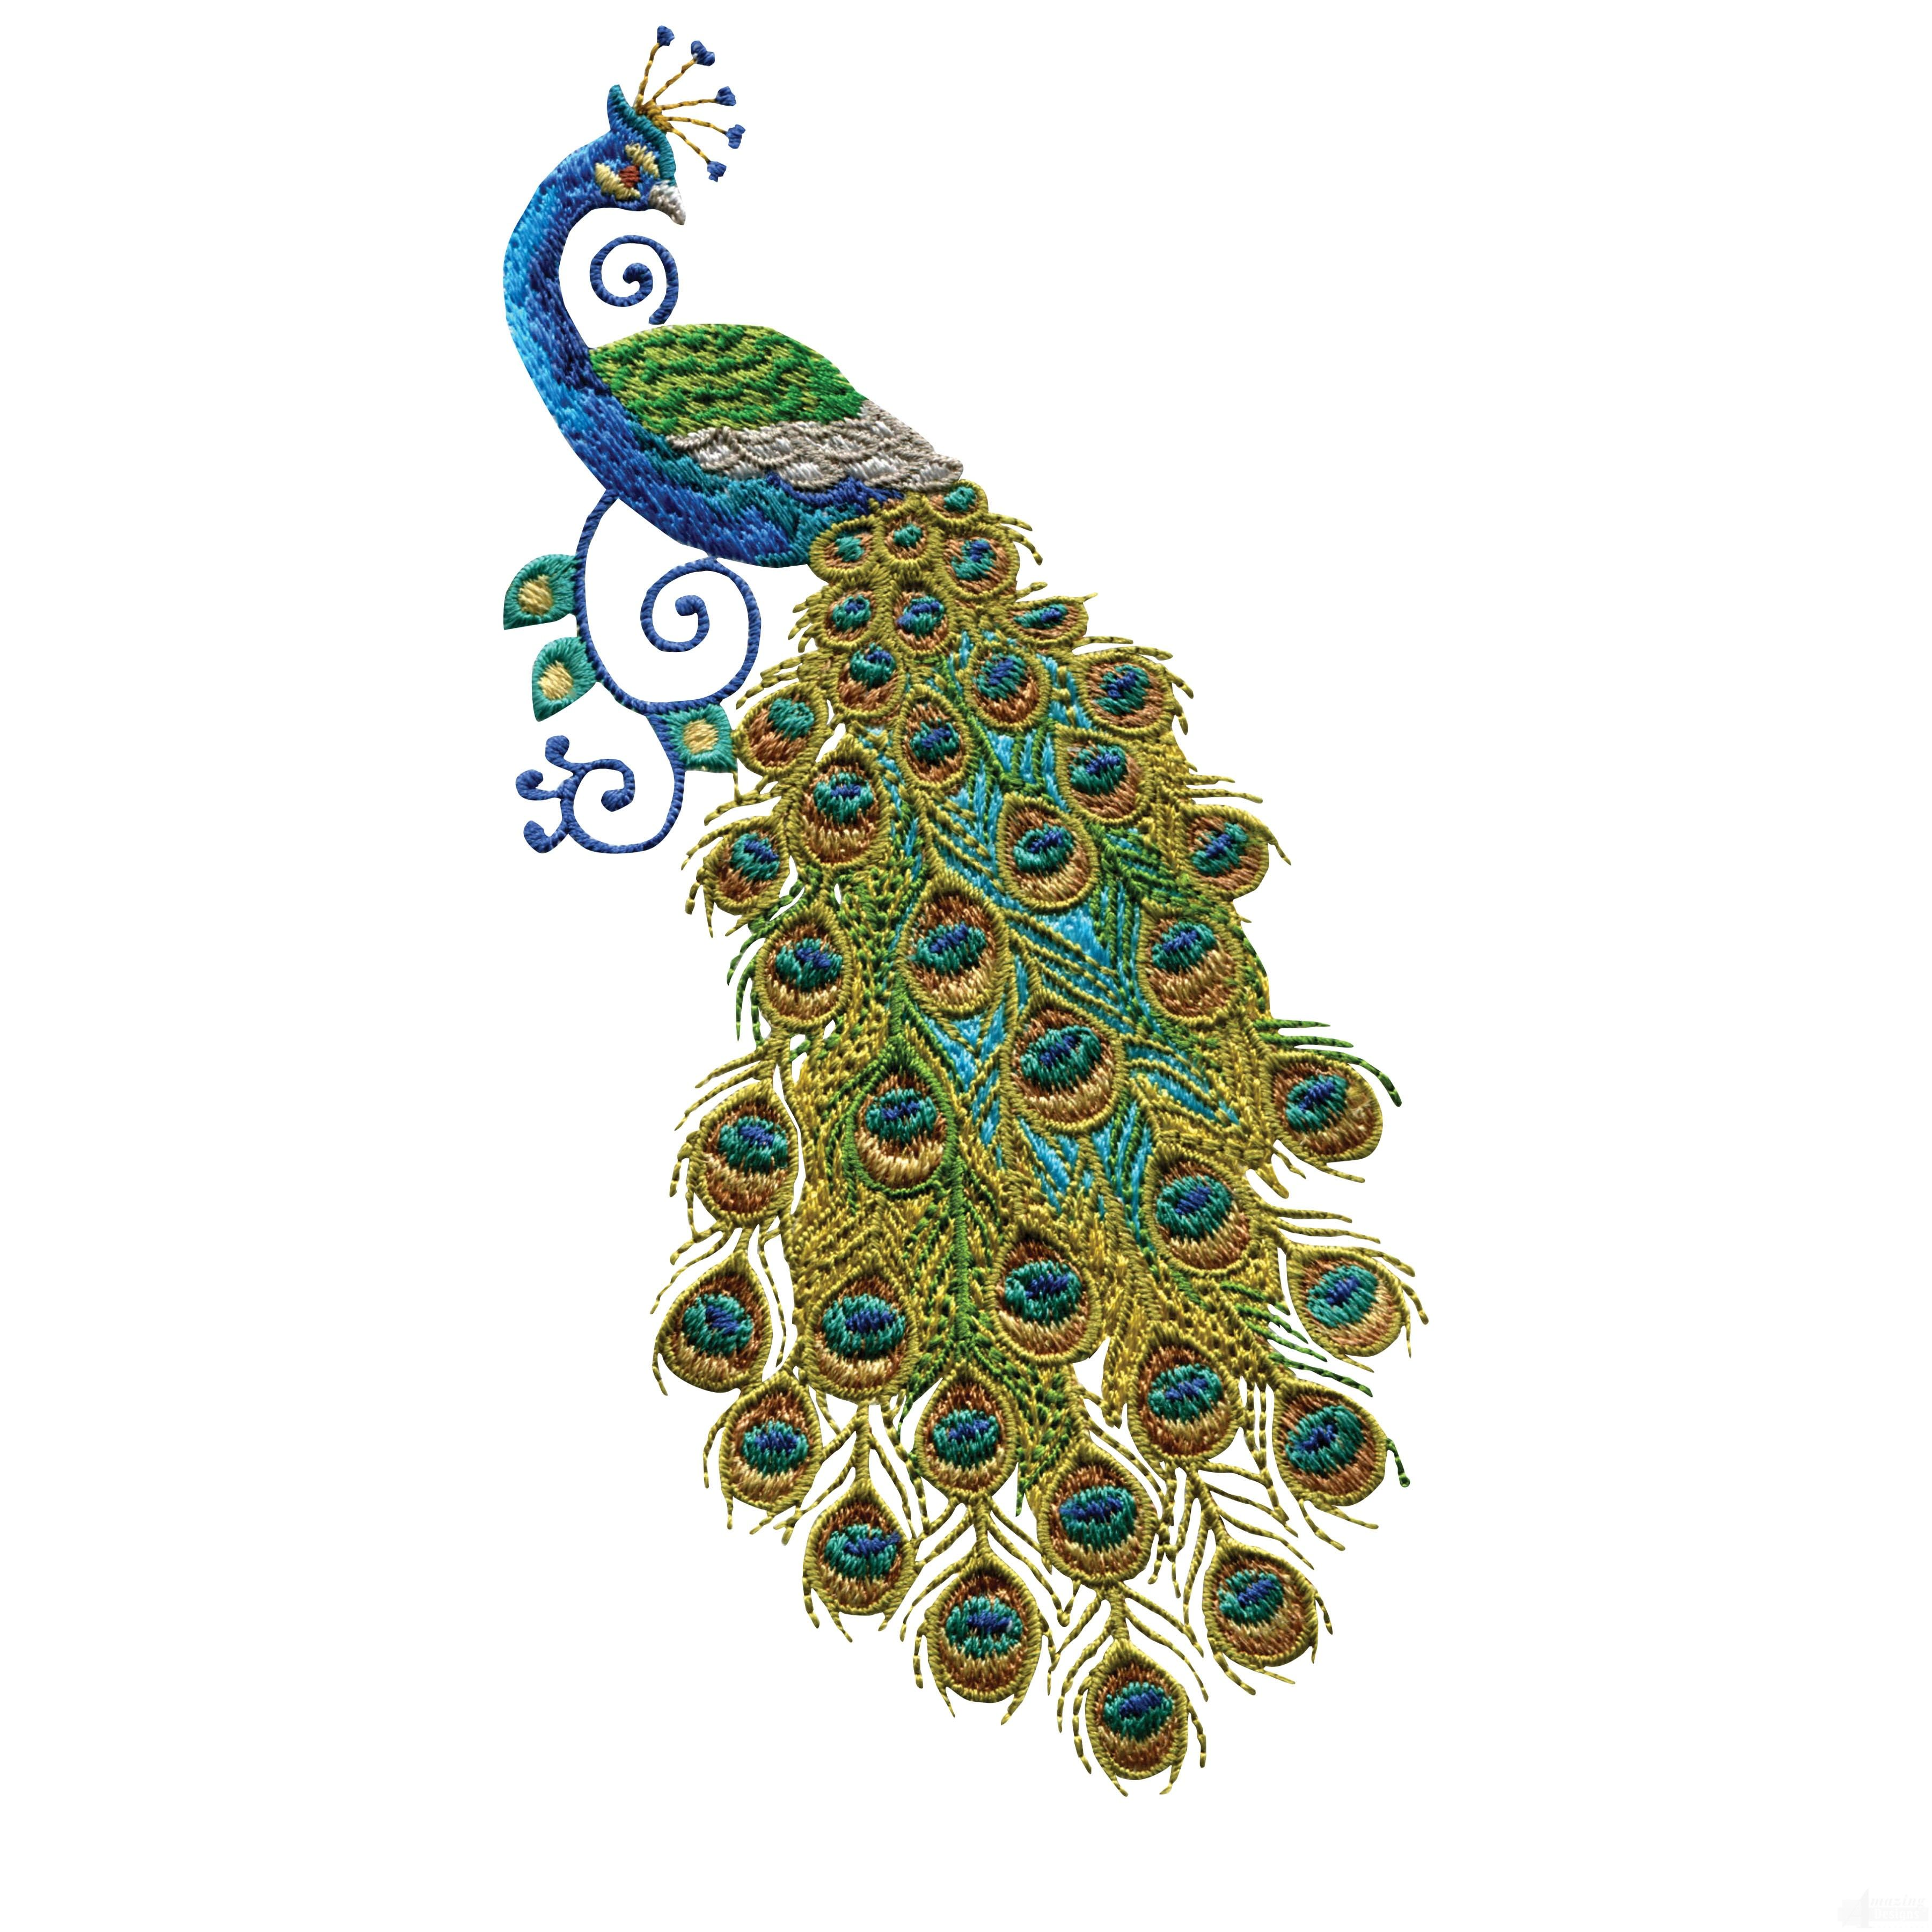 Swnpa128 Peacock Embroidery Design Needles Hooks Pinterest